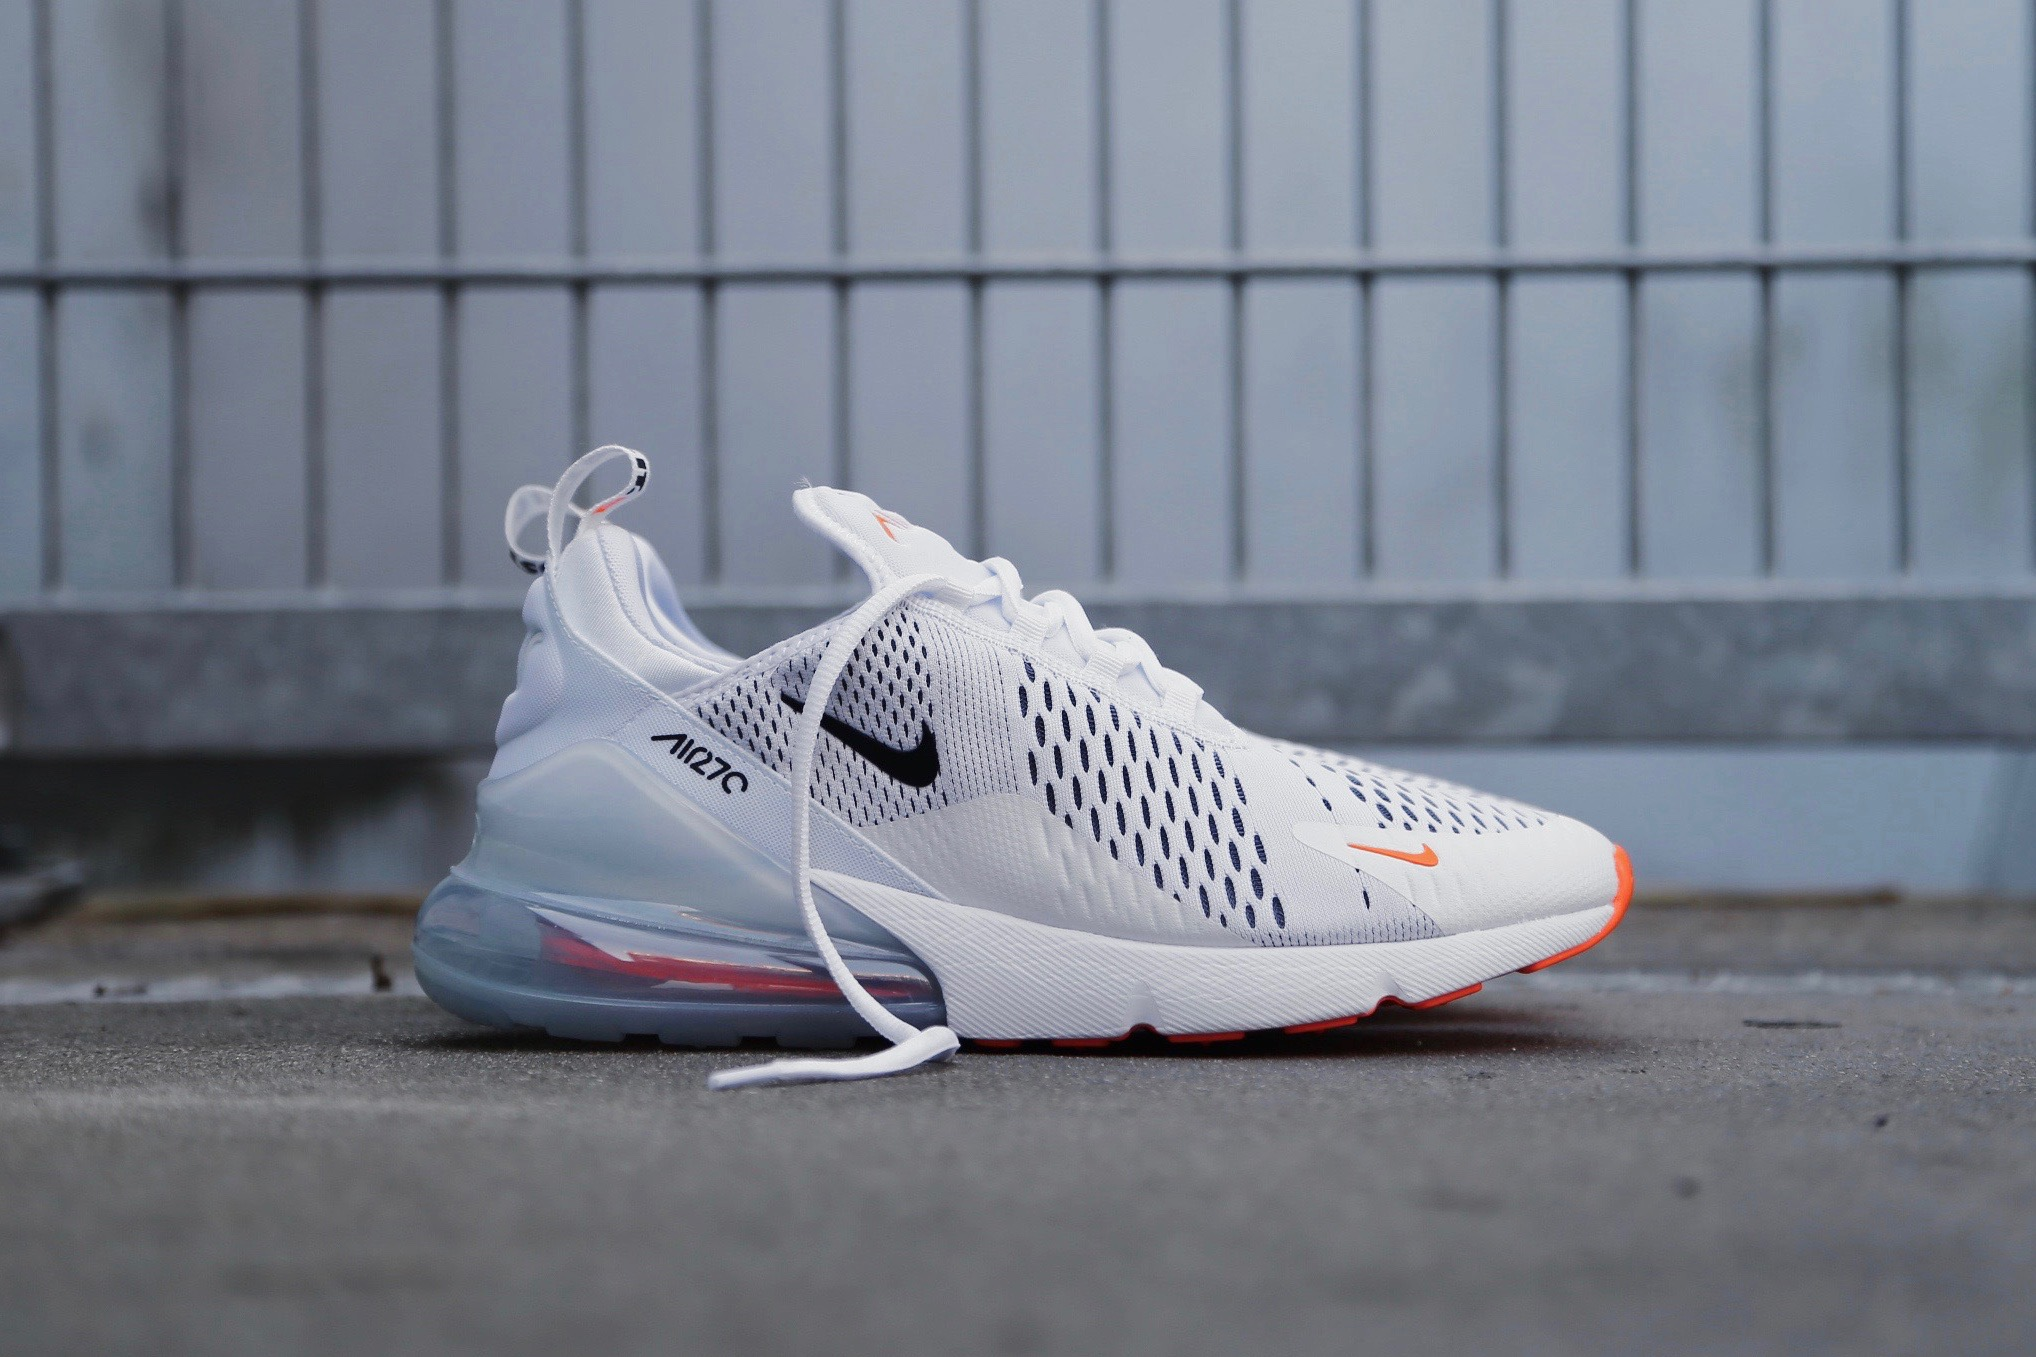 cozy fresh 7472f cf99e Nike Air Max 270 - White / Total Orange / Black